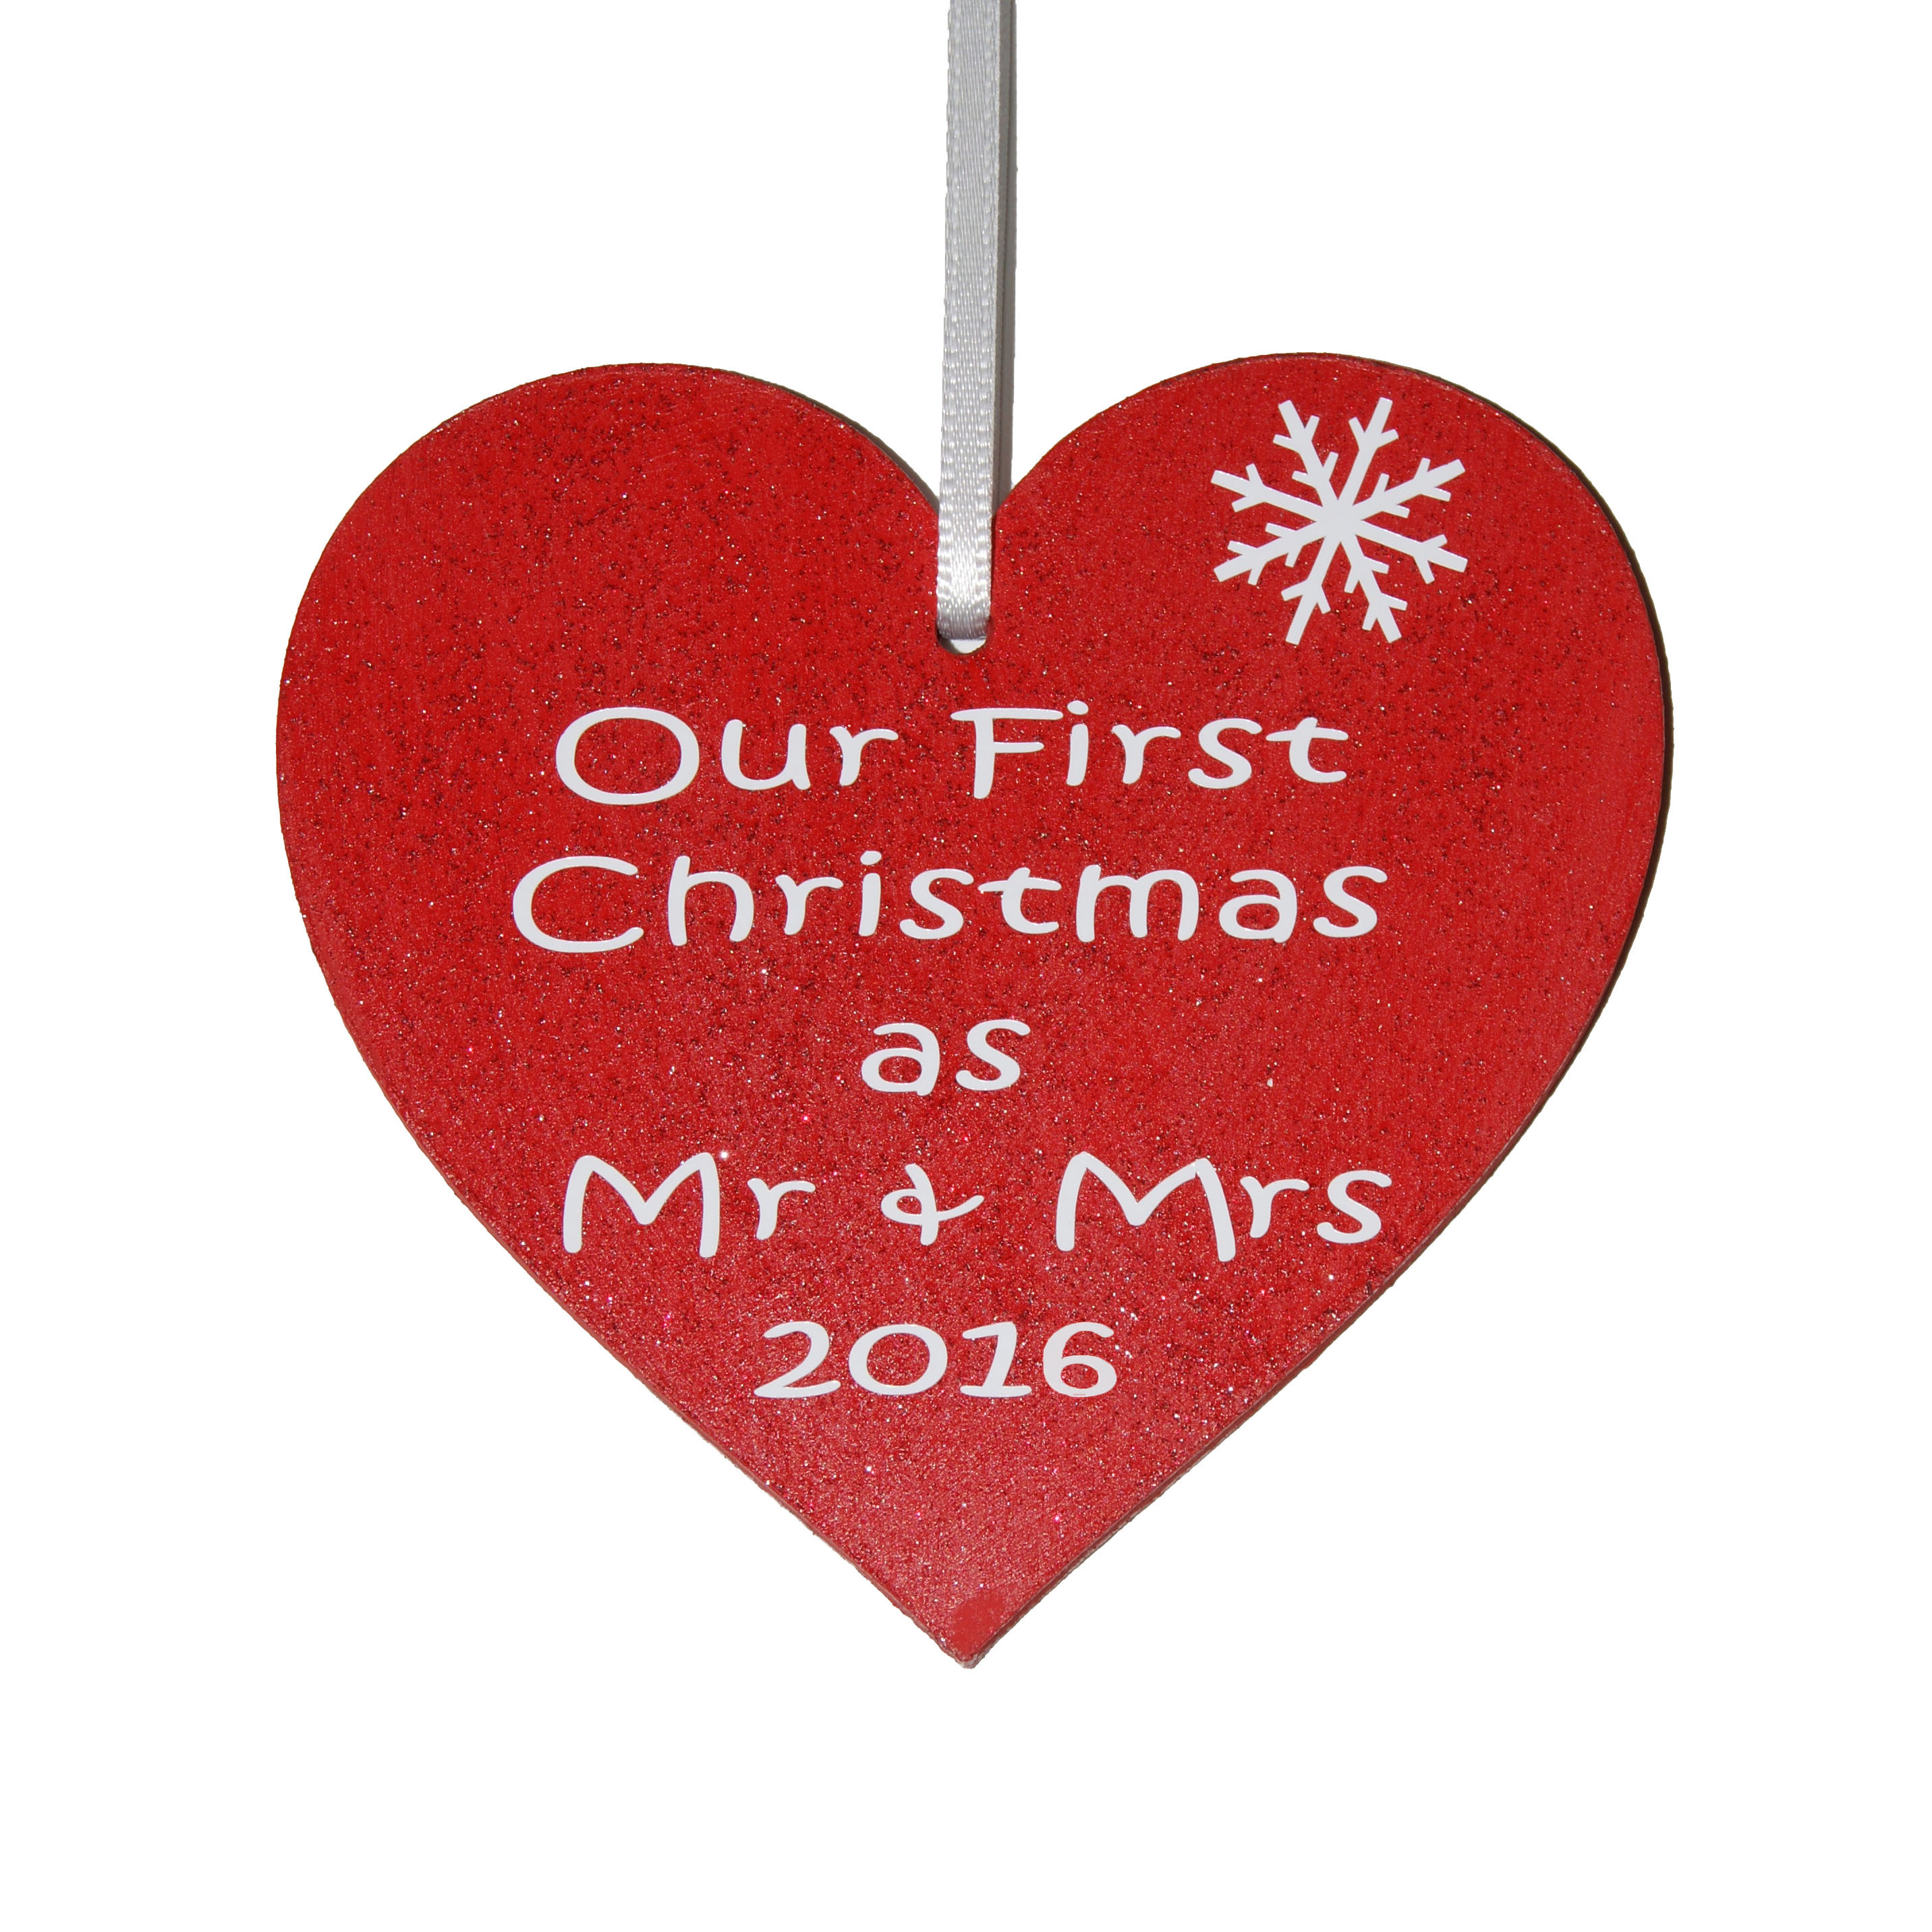 First christmas as mr and mrs decoration - Our First Christmas As Mr Mrs 2016 Red Heart Decoration